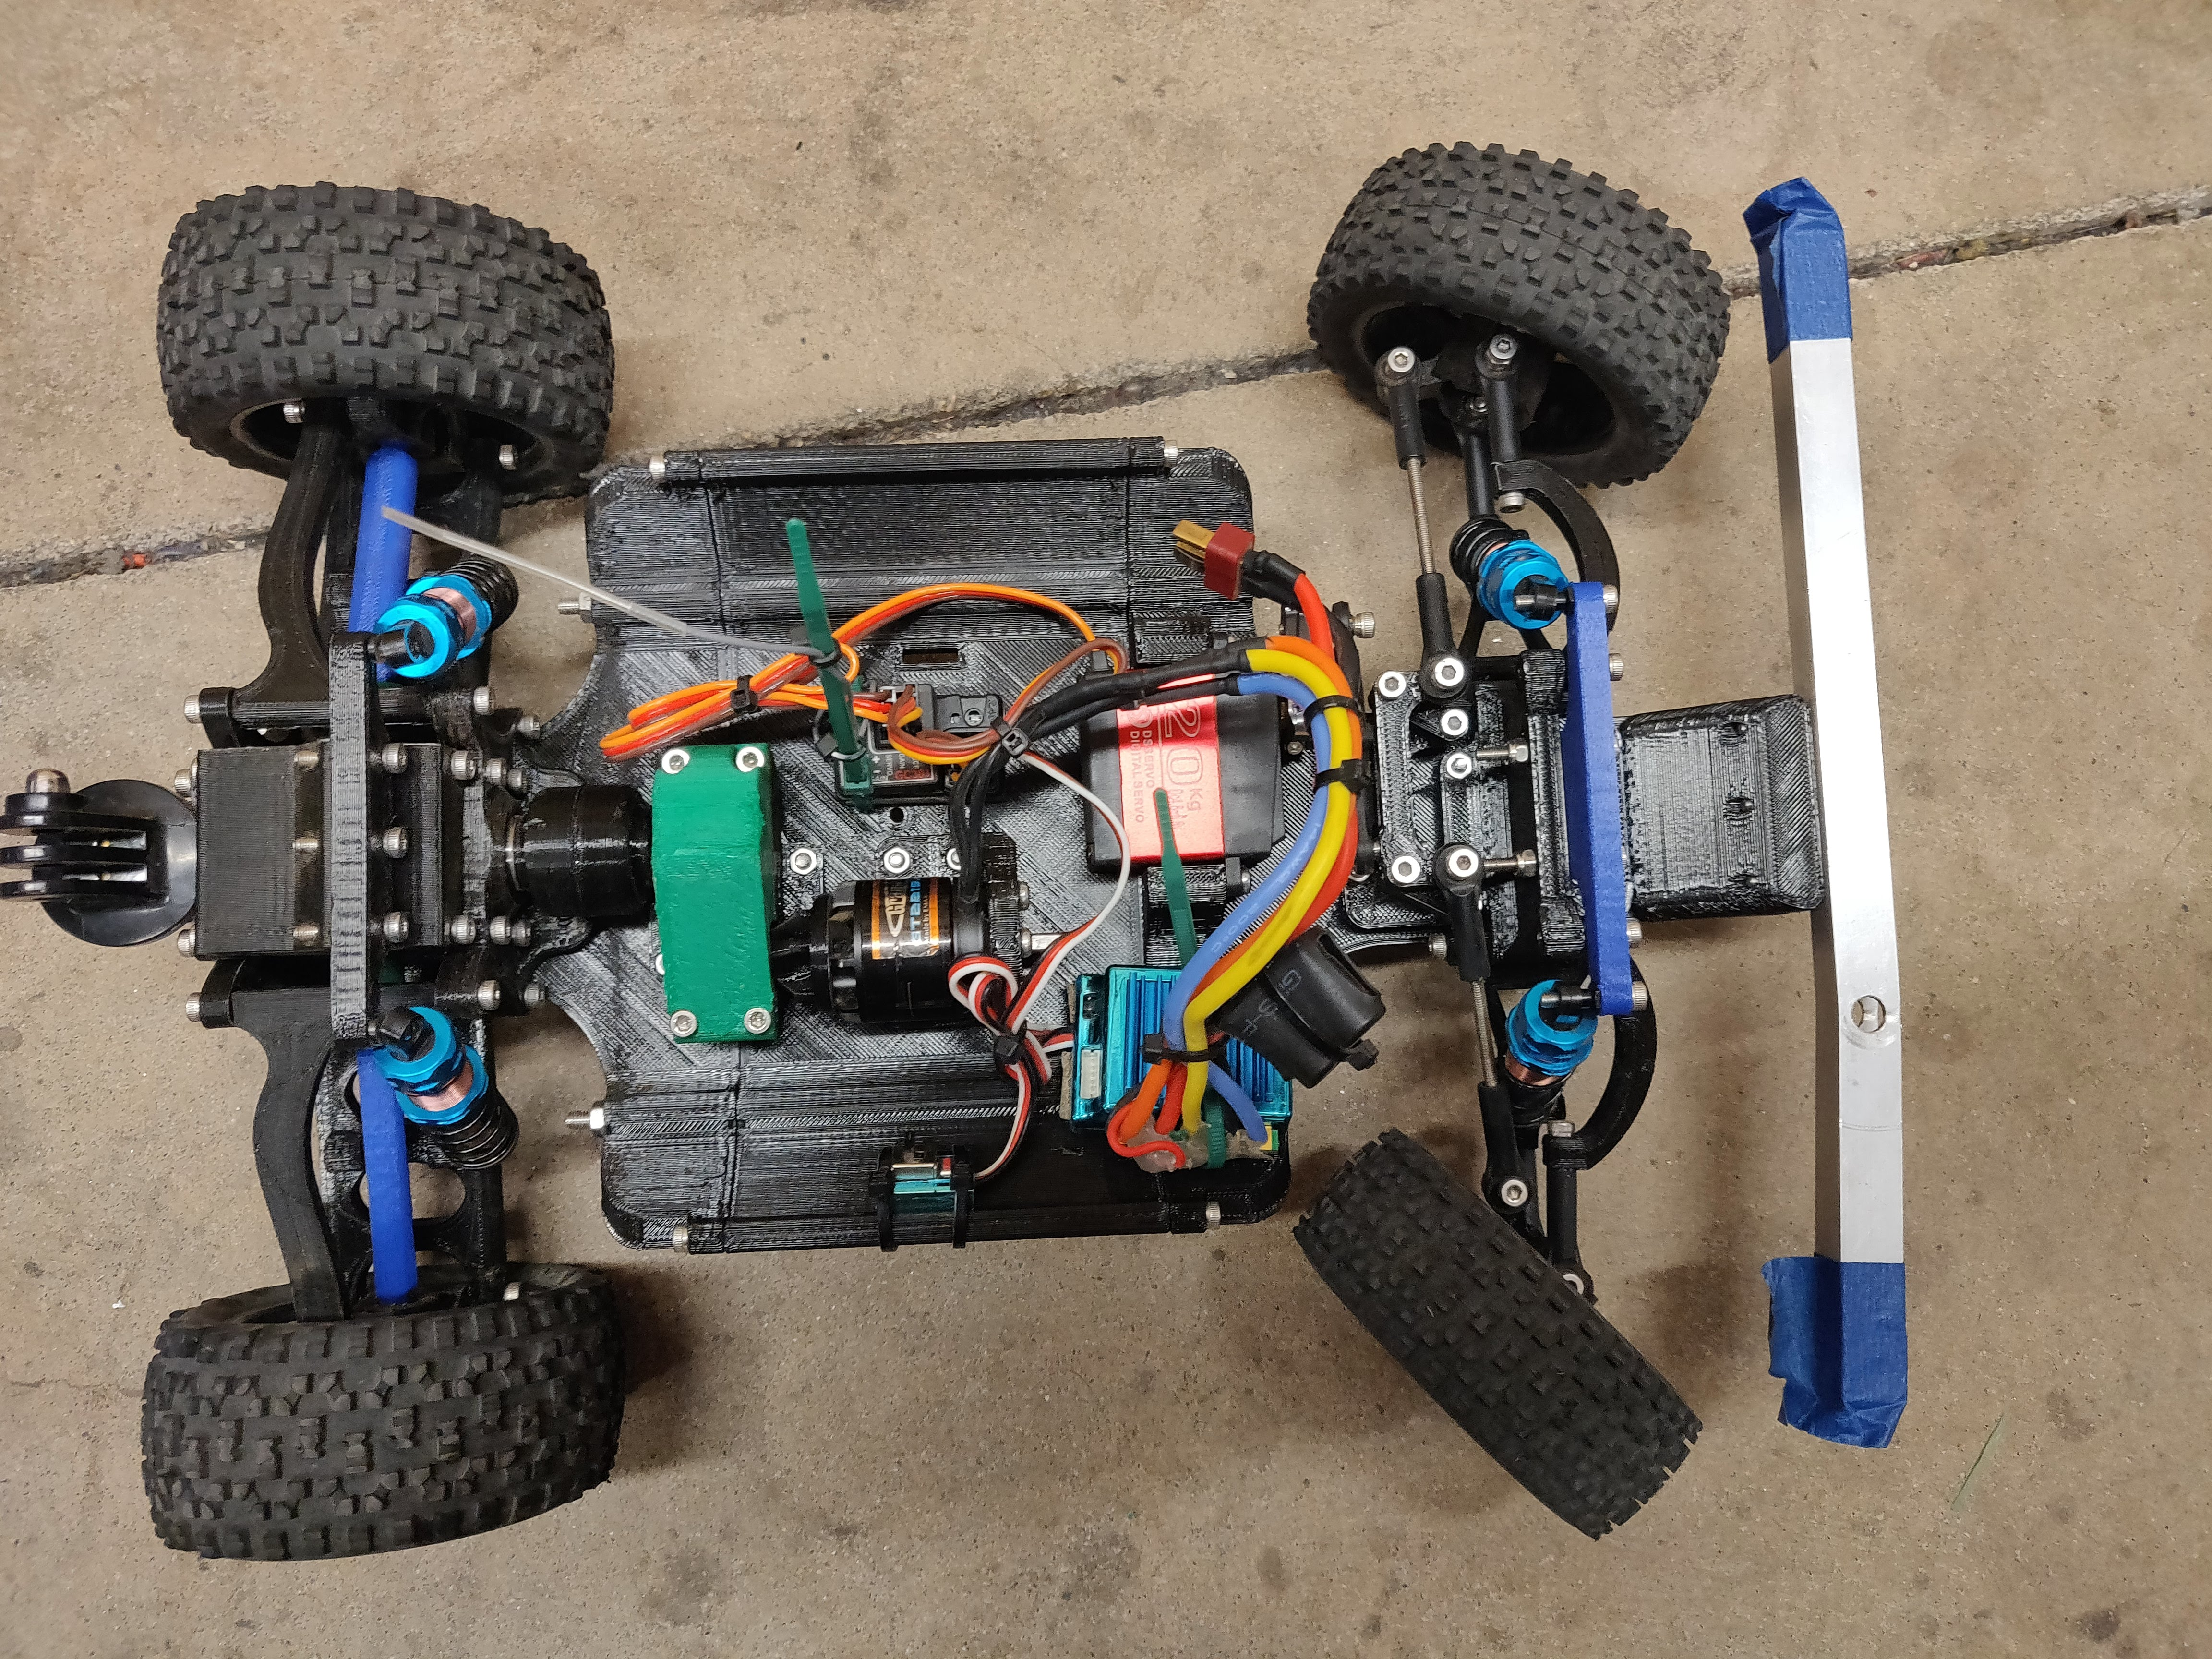 3D printed RC Car V2 (Rear Assembly) [3 of 3] by KrisCubed - Thingiverse